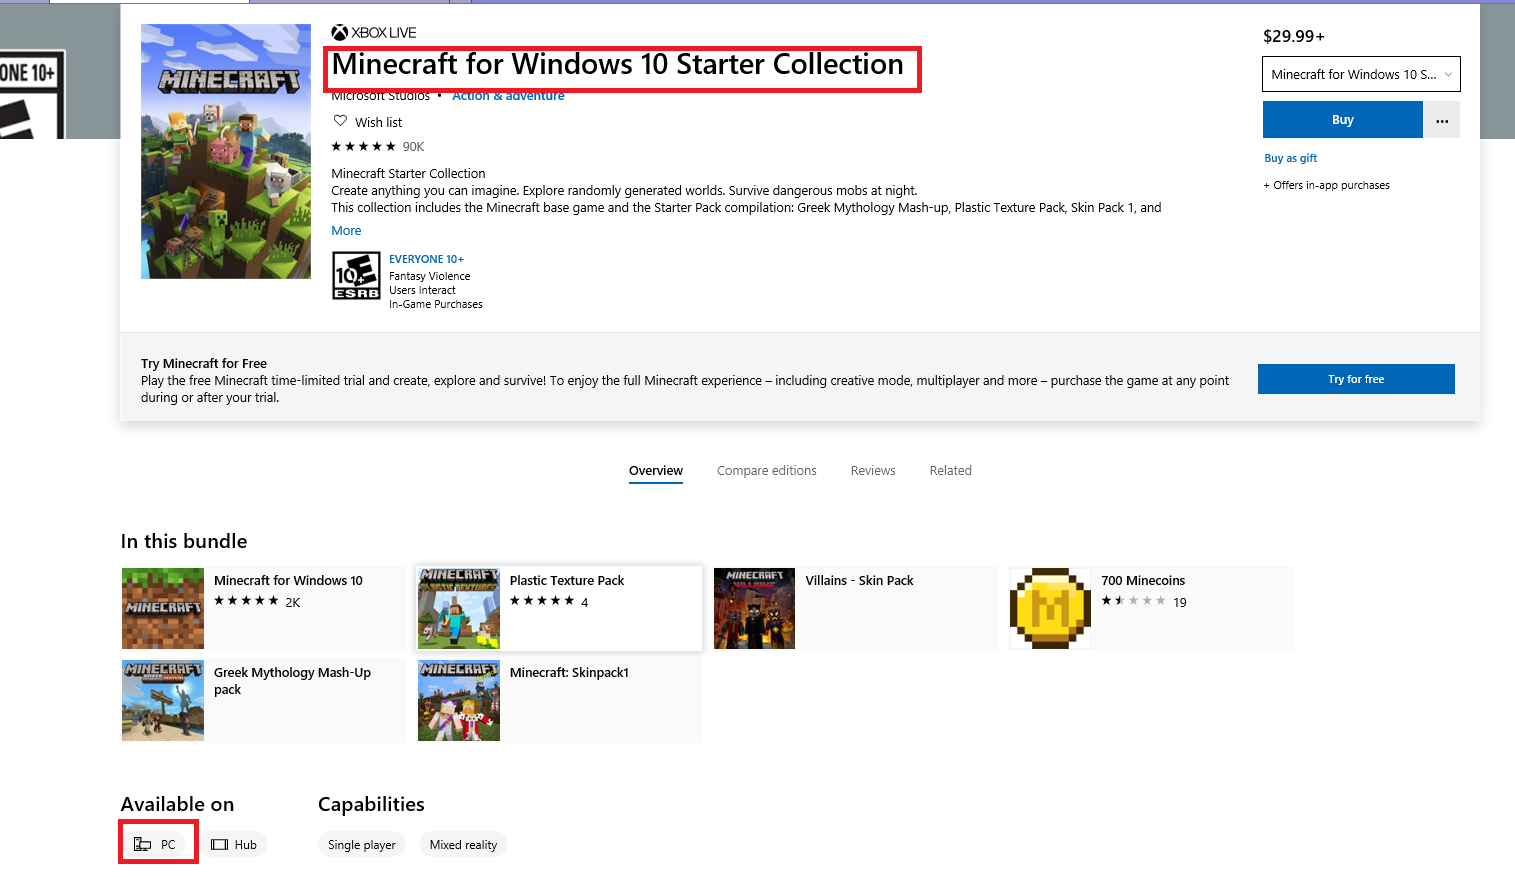 Windows 10 Minecraft starter collection shows I can install on pc but nothing happening... 3786f464-ee7e-4458-88e7-56128929293b?upload=true.png